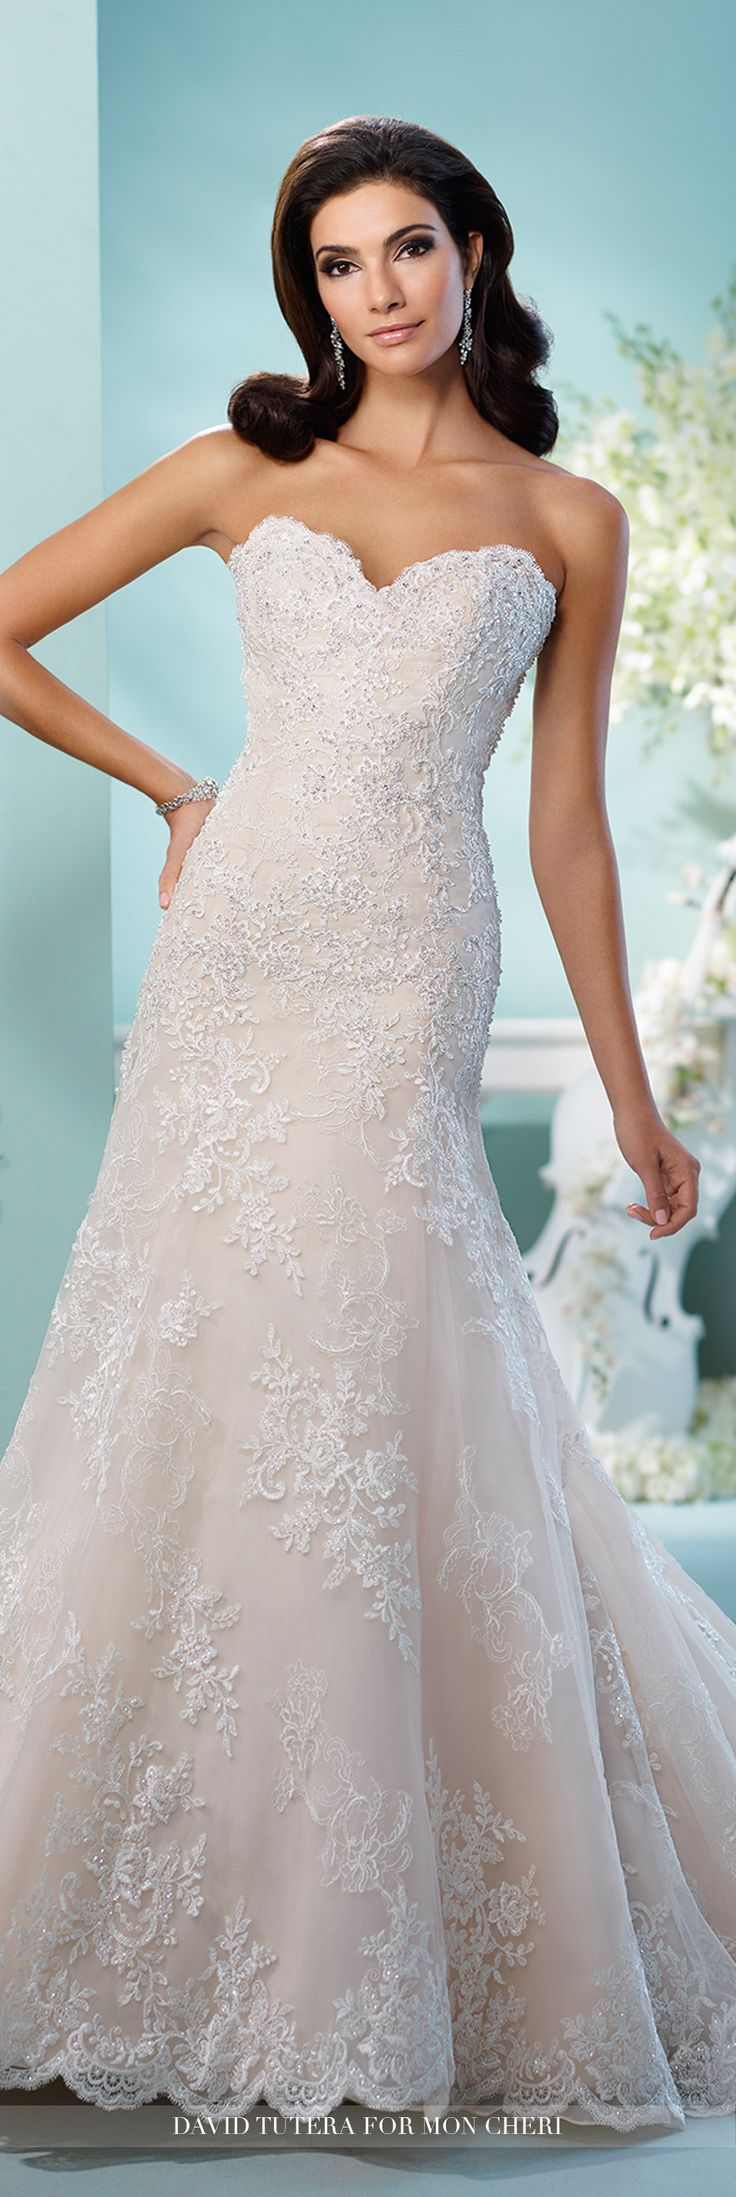 David Tutera for Mon Cheri - 216249 Coventina - Strapless tulle and organza over satin fit and flare dress with hand-beaded embroidered lace, scalloped sweetheart neckline, scalloped hemline, chapel length train, detachable spaghetti and halter straps included.Sizes: 0 - 20Colors: Stone/Alabaster Ivory, Ivory, White